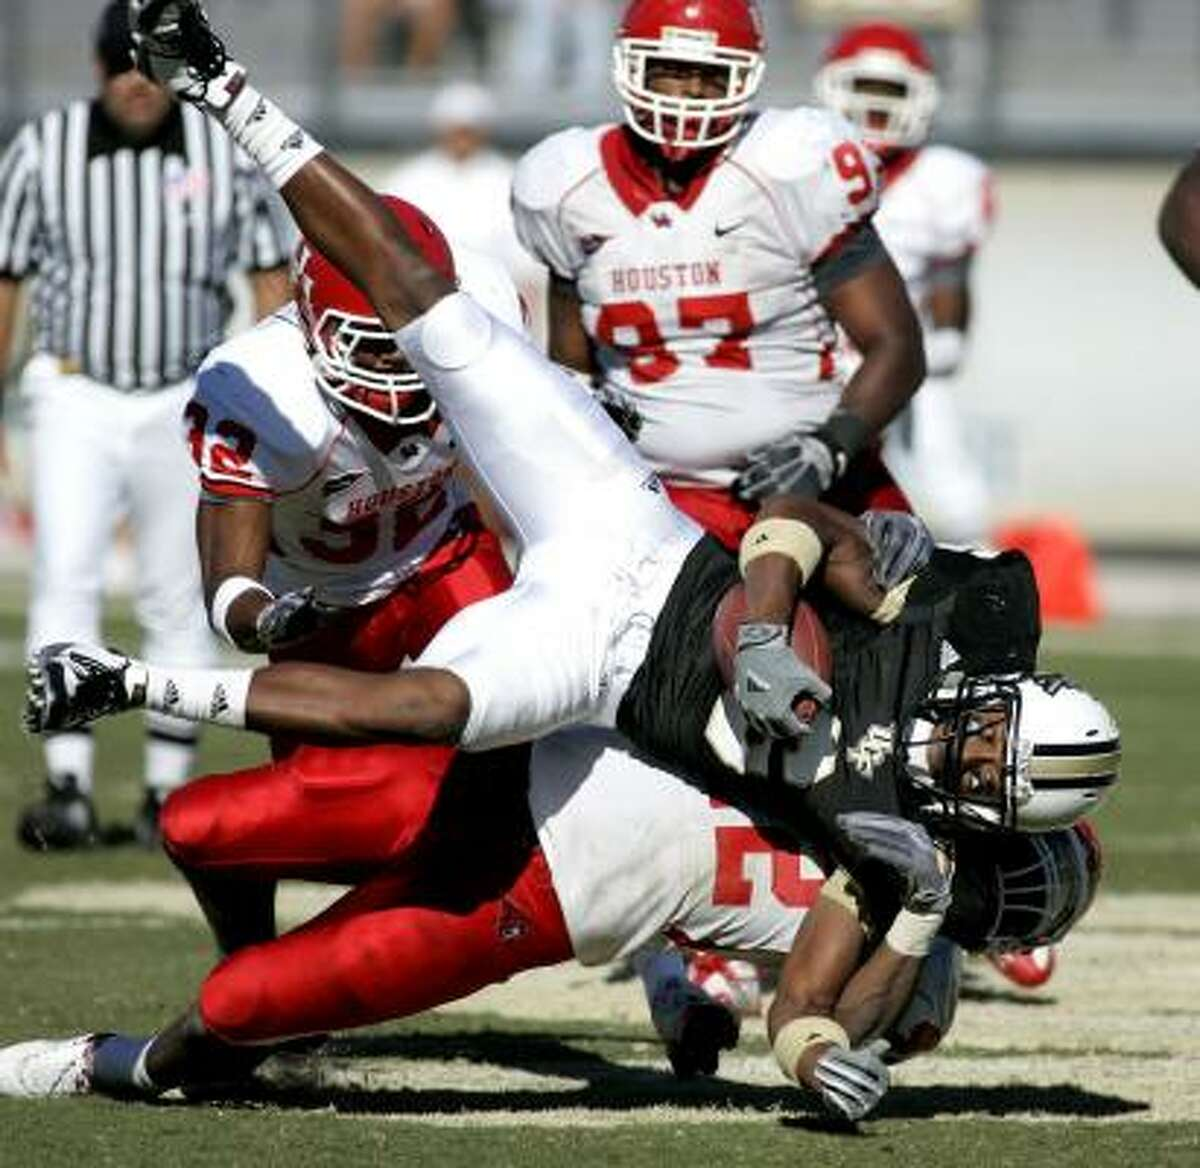 Central Florida wide receiver Brian Watters is slammed to the ground by UH linebacker Phillip Steward (42).